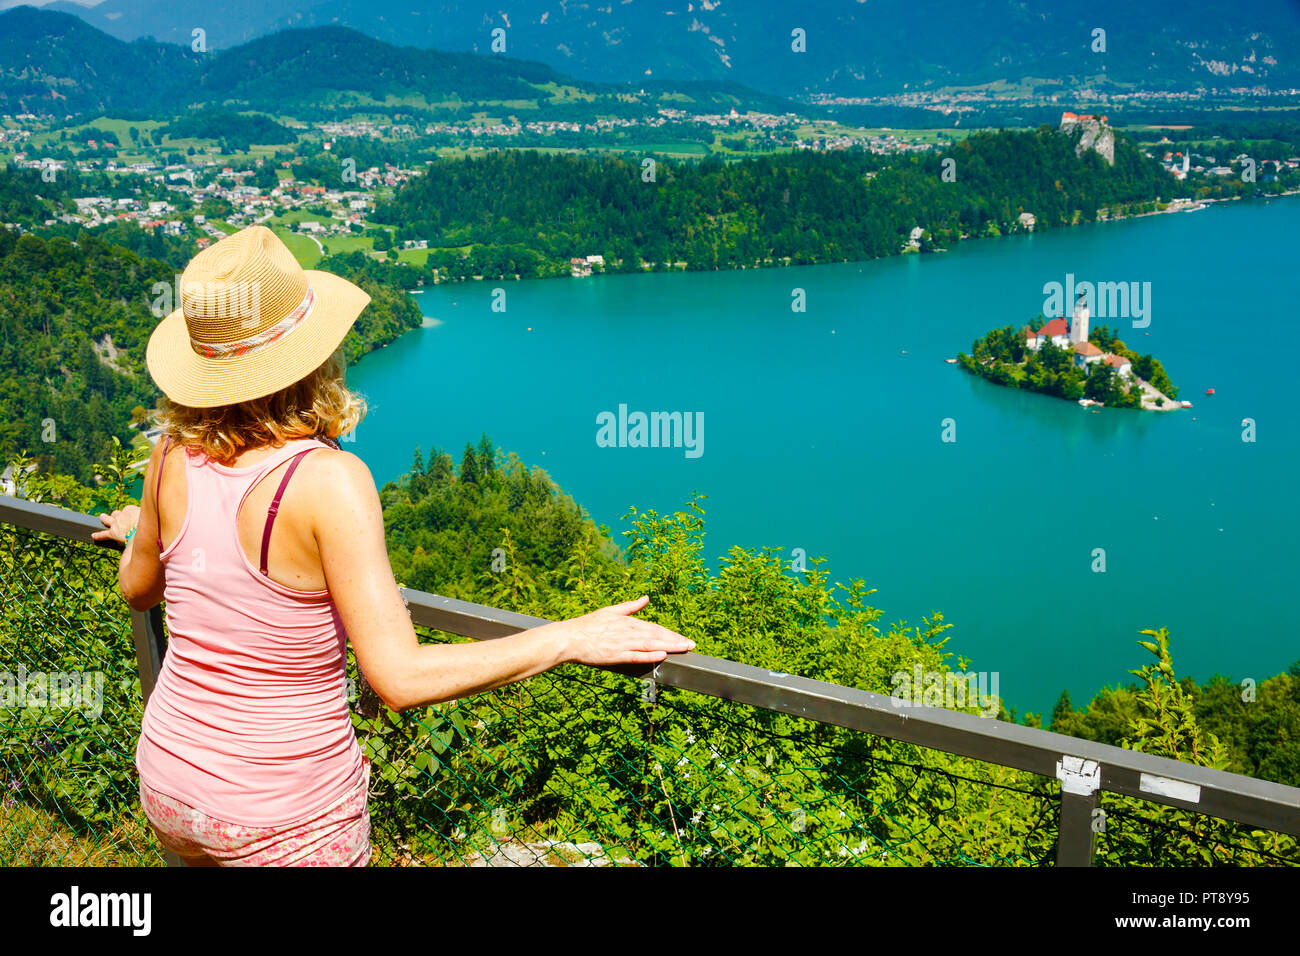 Woman looking a lake landscape from a viewpoint. - Stock Image